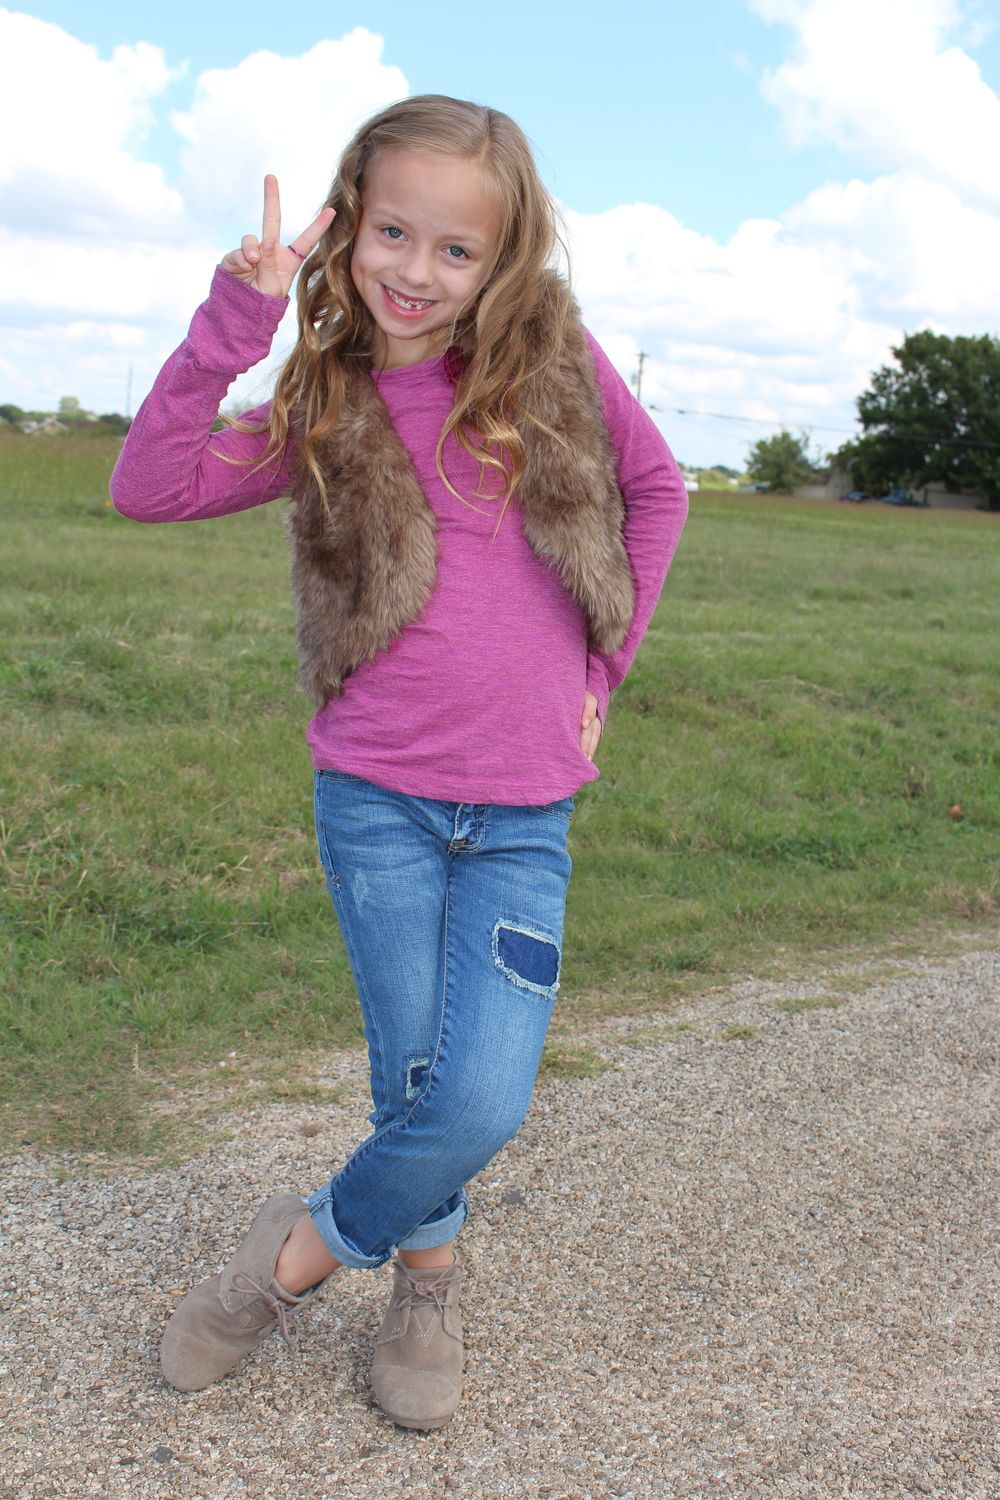 Kids fashion blog featuring great fall fashion tips